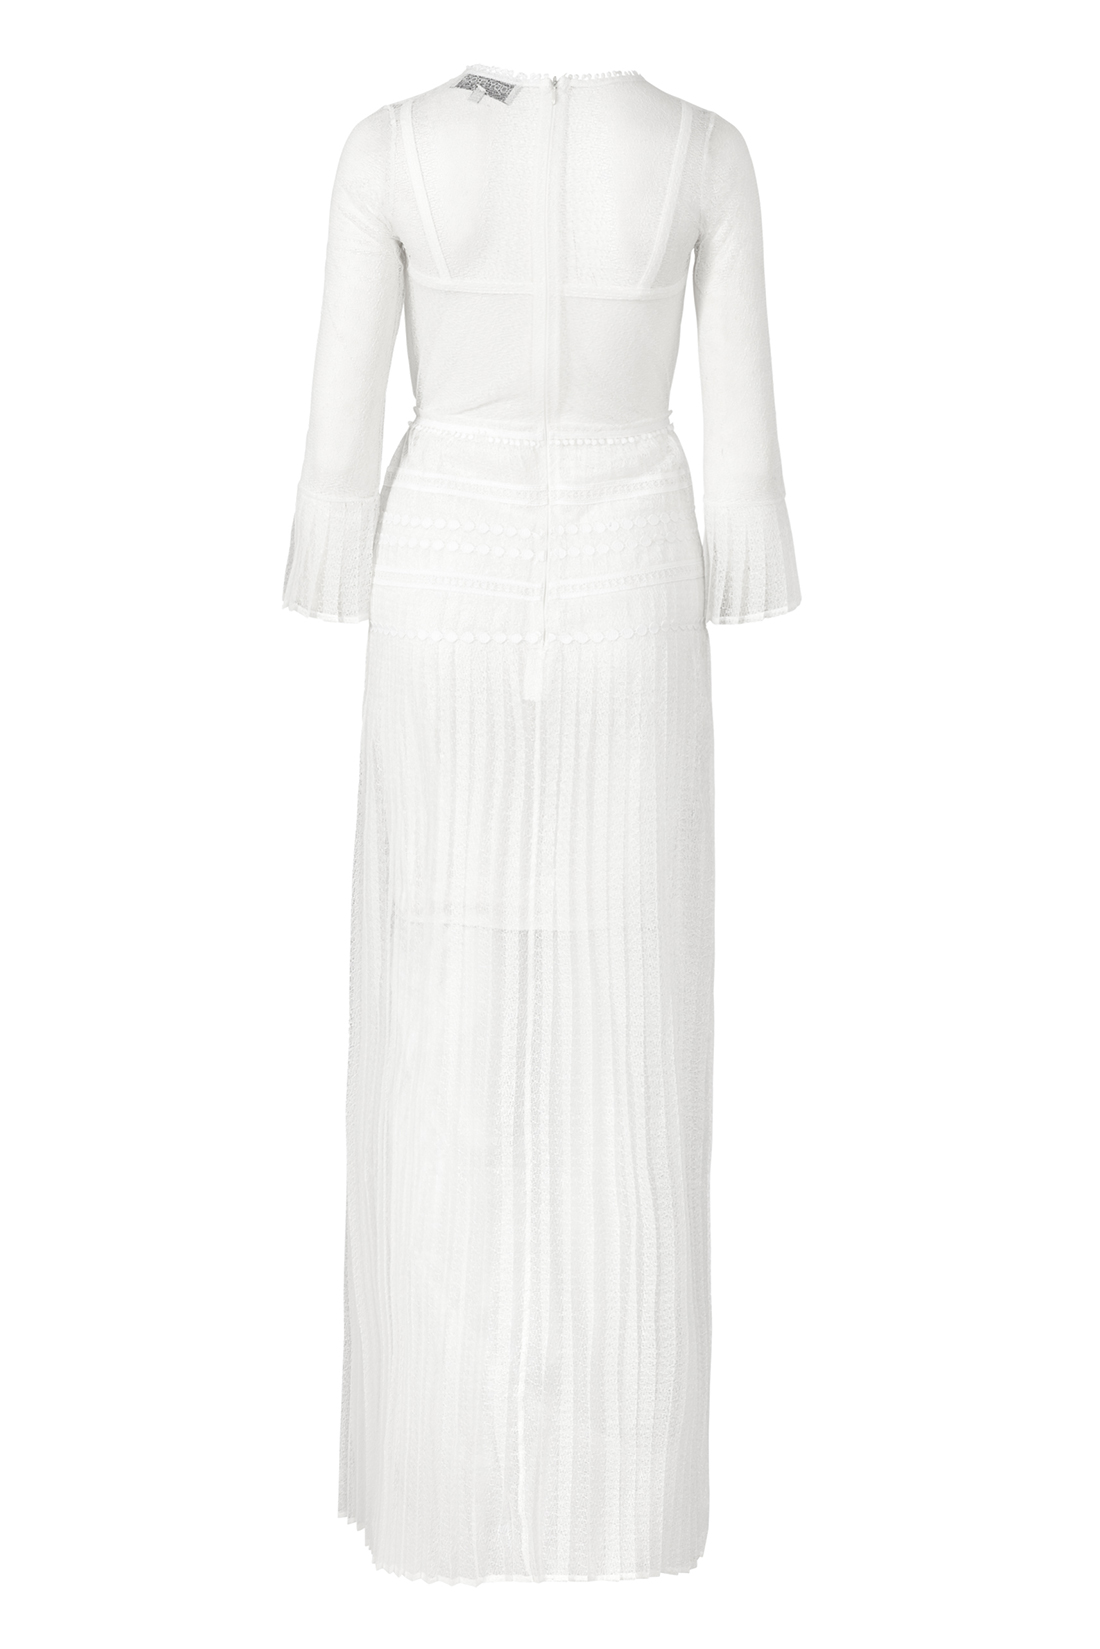 The Bluebell Ivory by Body Frock back